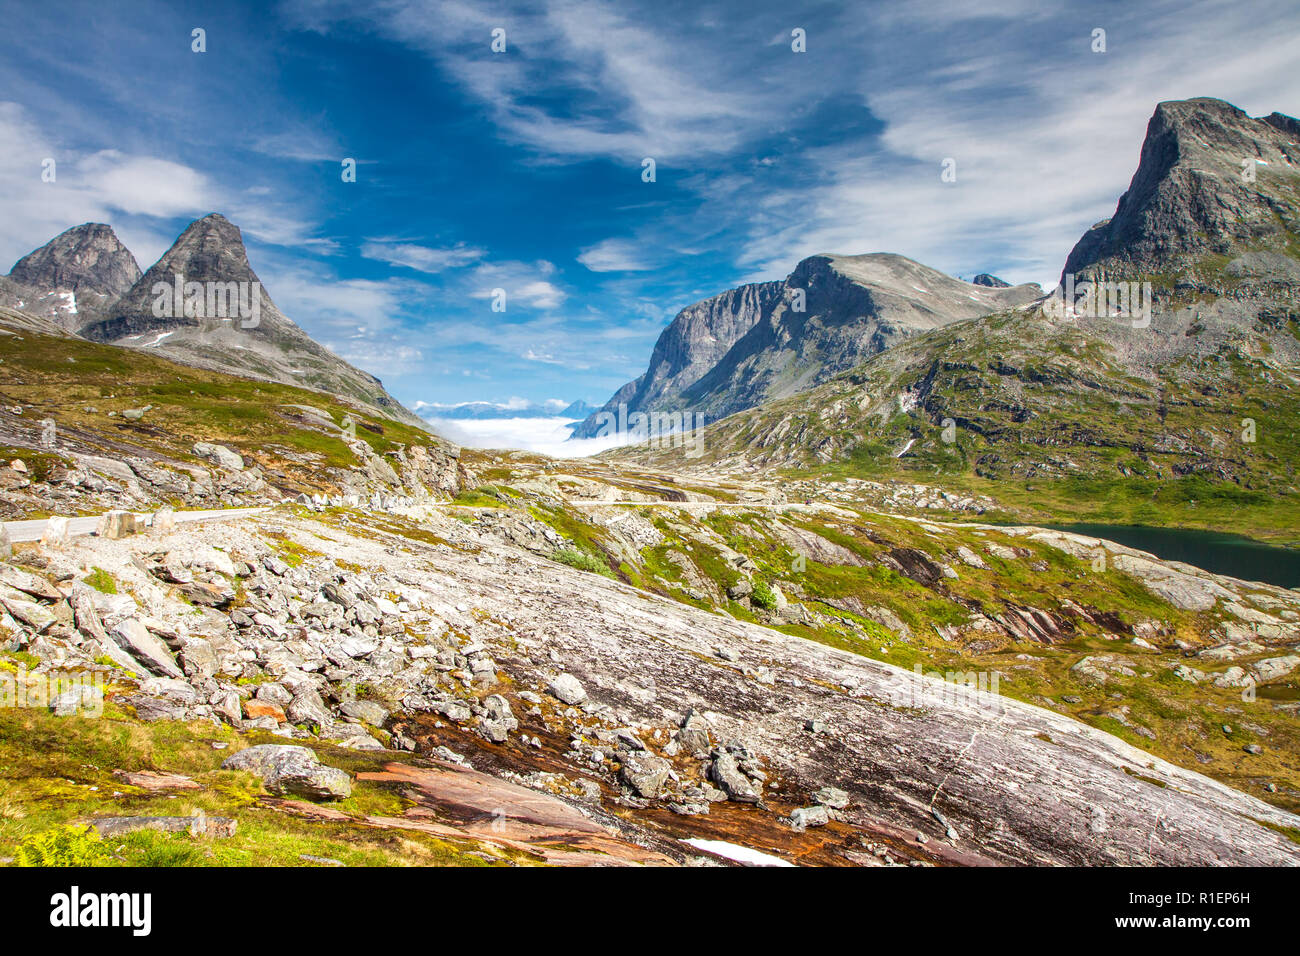 Trollstigen (Troll's road) in Norway - Stock Image